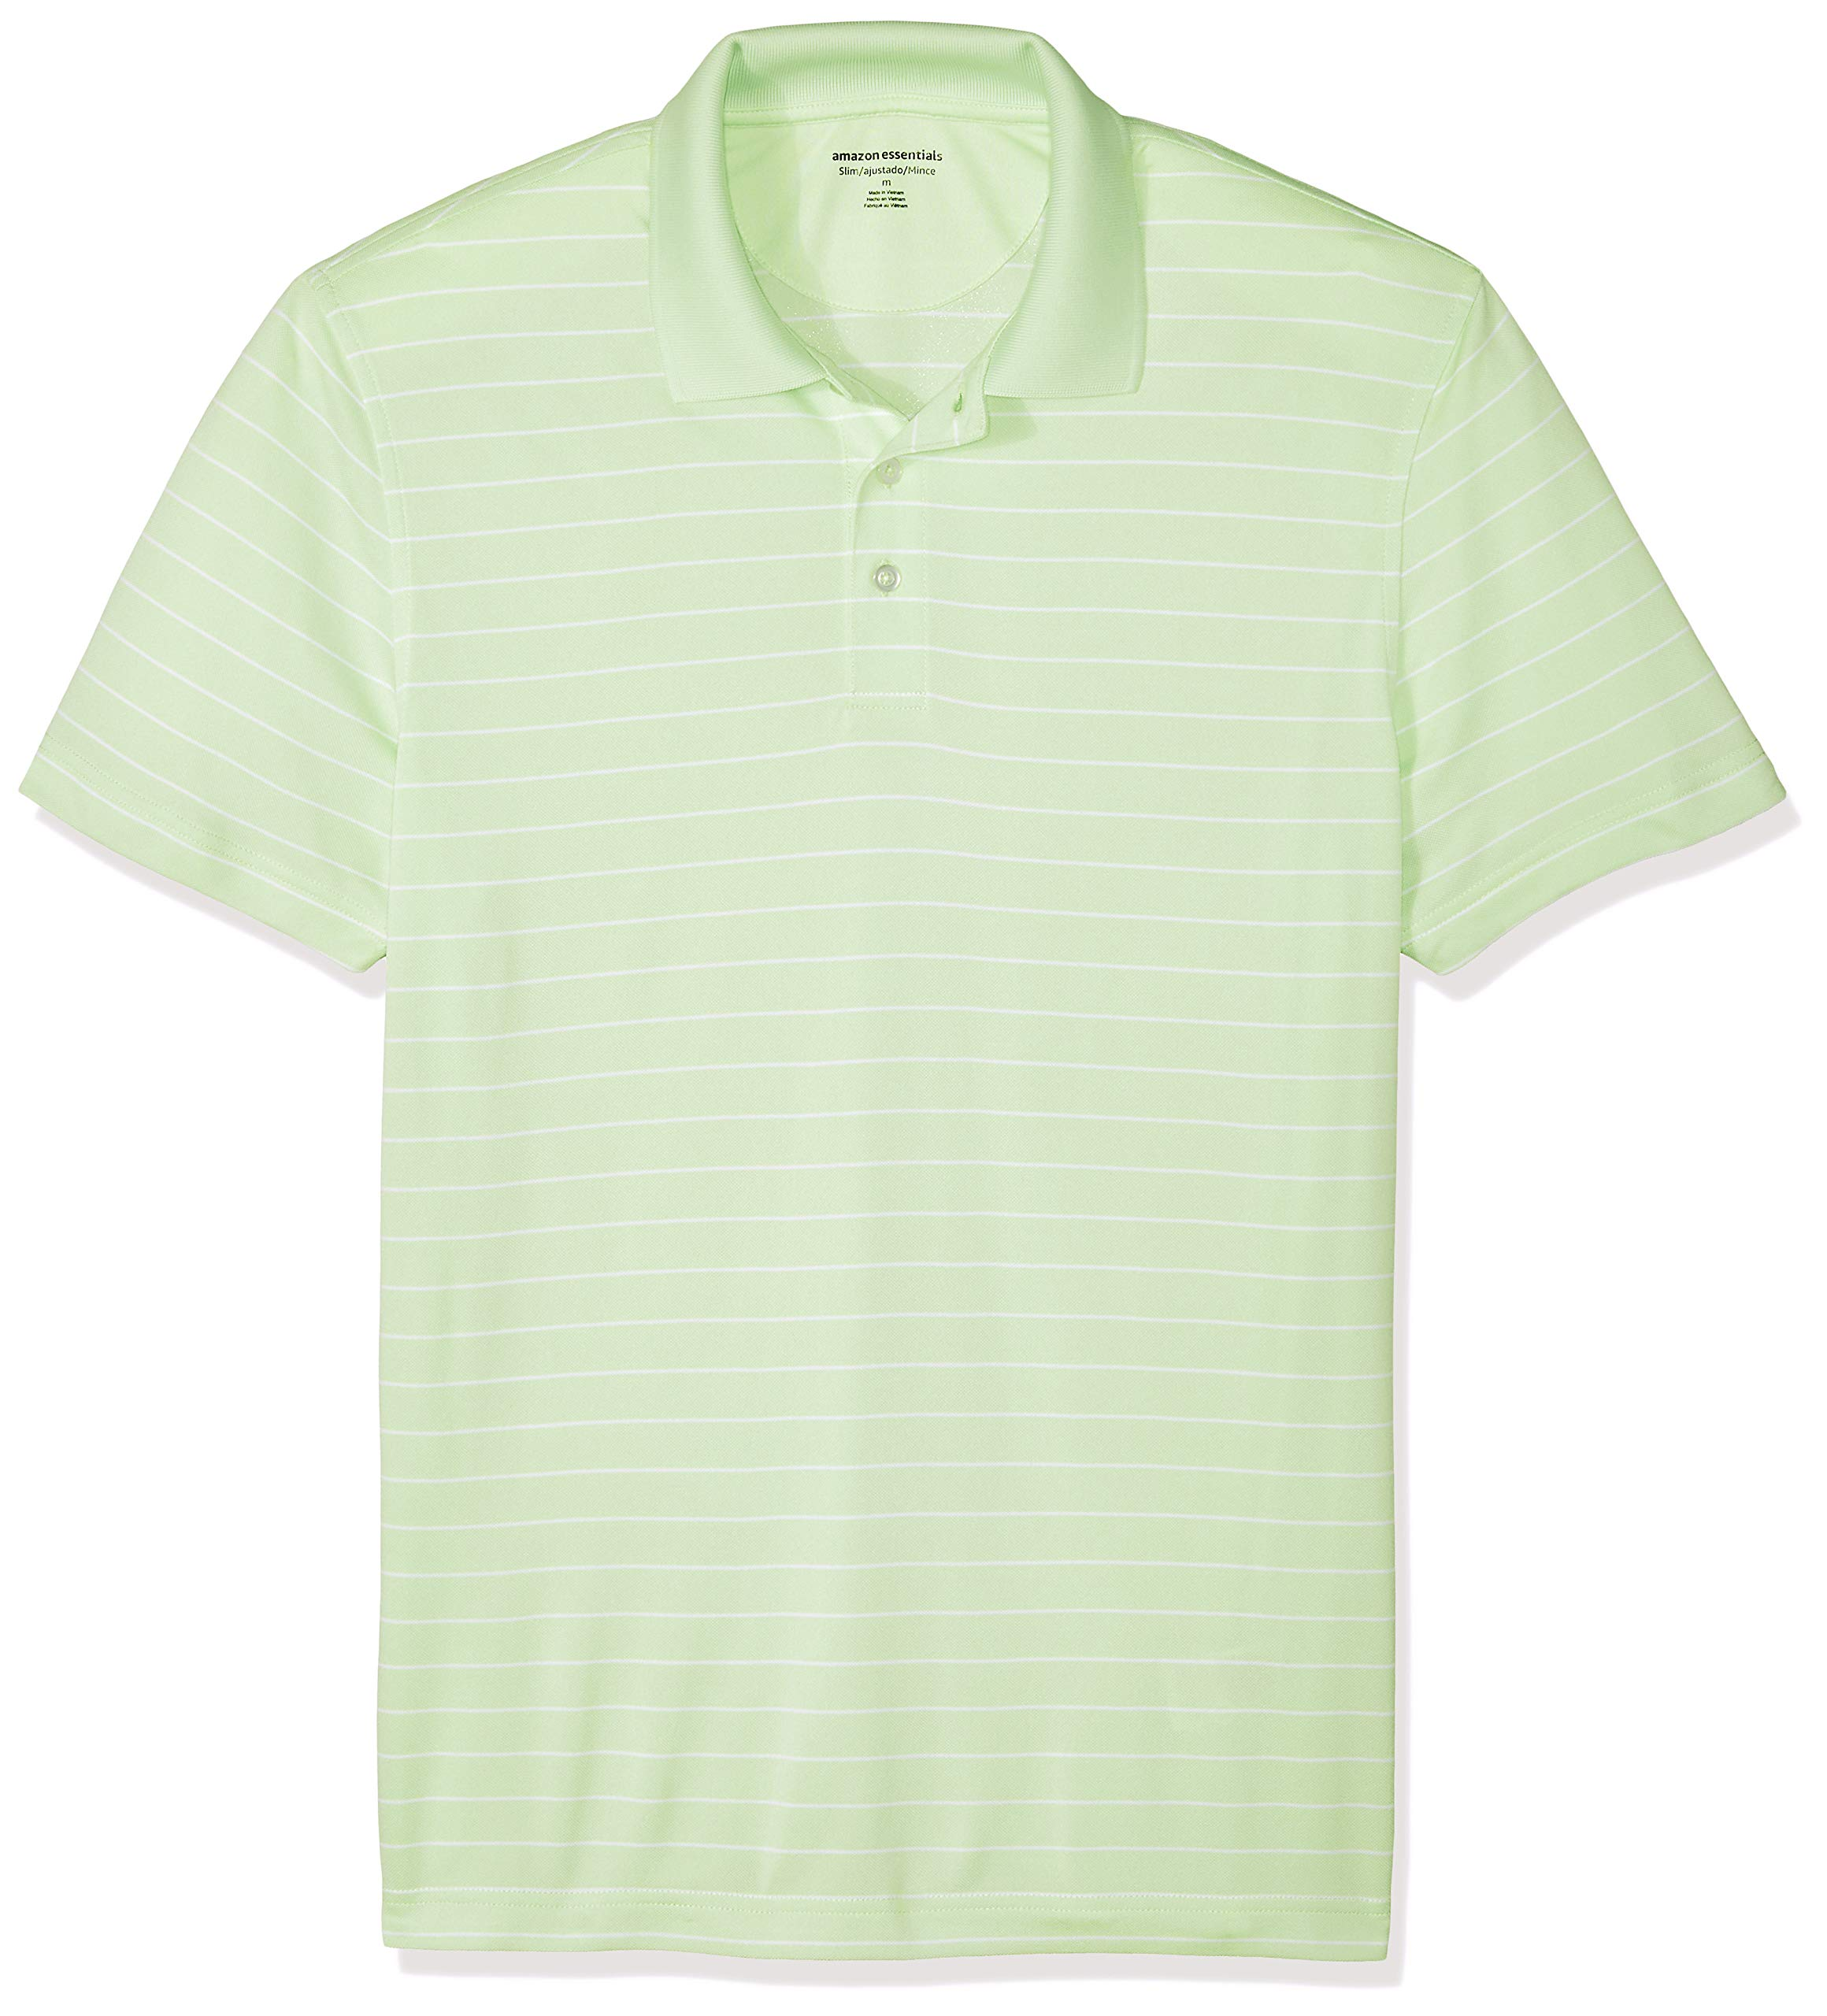 Amazon Essentials Men's Slim-Fit Quick-Dry Golf Polo Shirt, Lime Green Stripe, X-Small